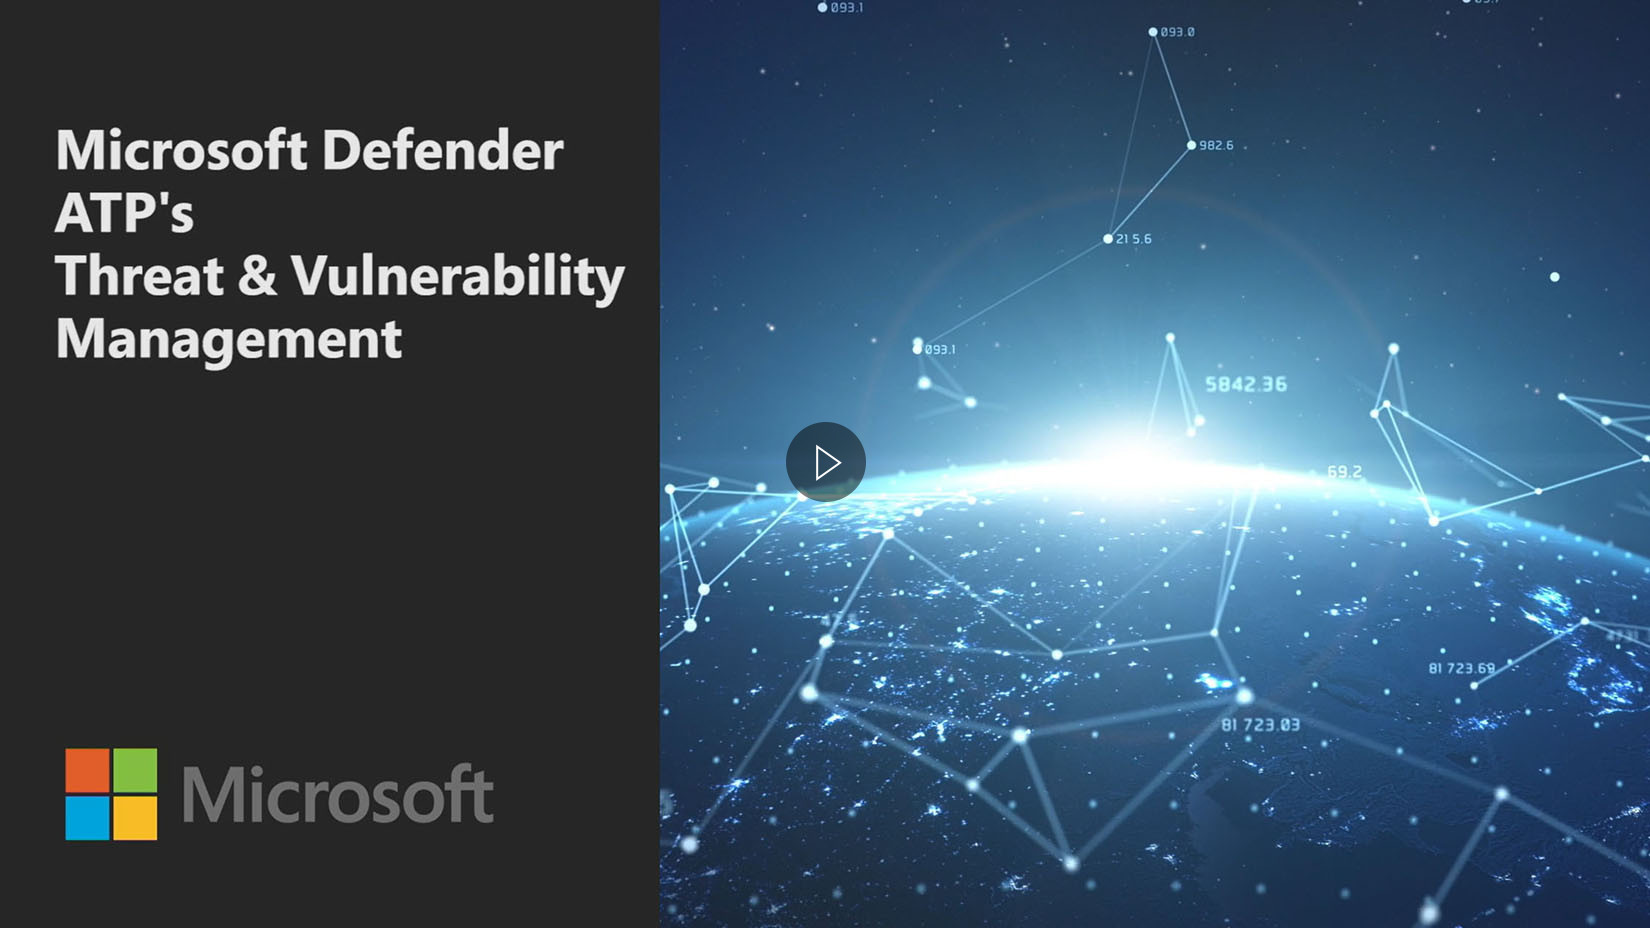 Video Microsoft Defender Threat & Vulnerability Management